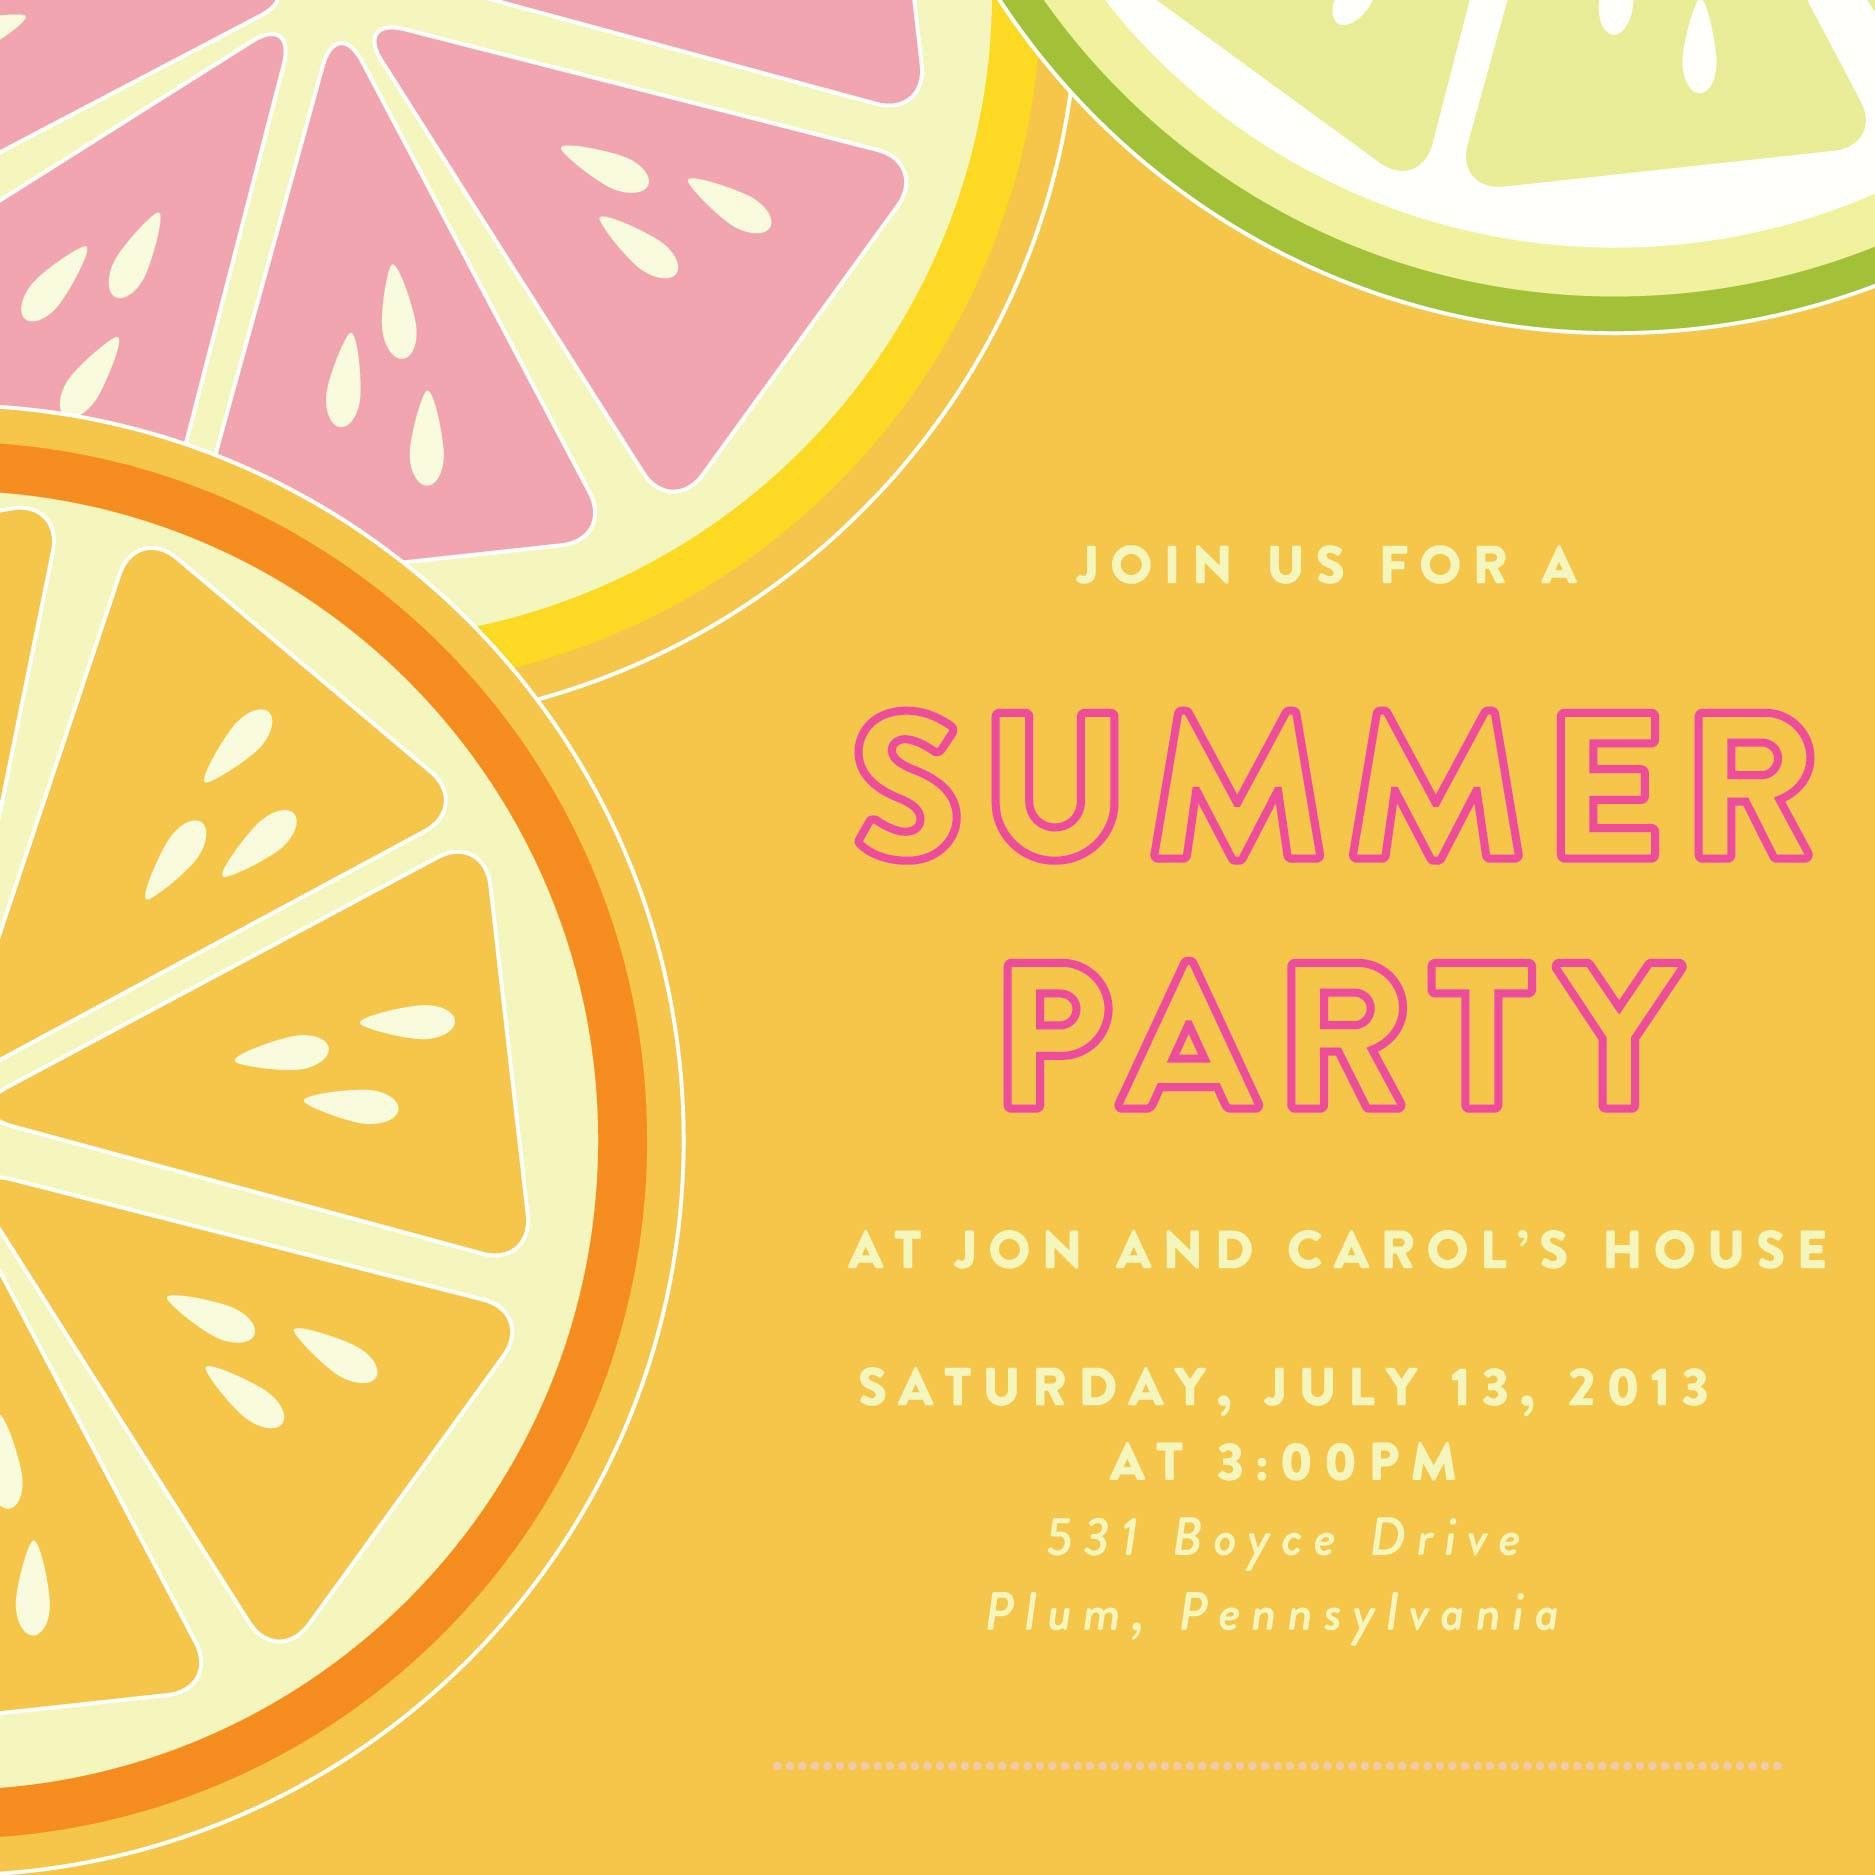 Summer Party Invites Templates Summer Bbq Party Invitation Template